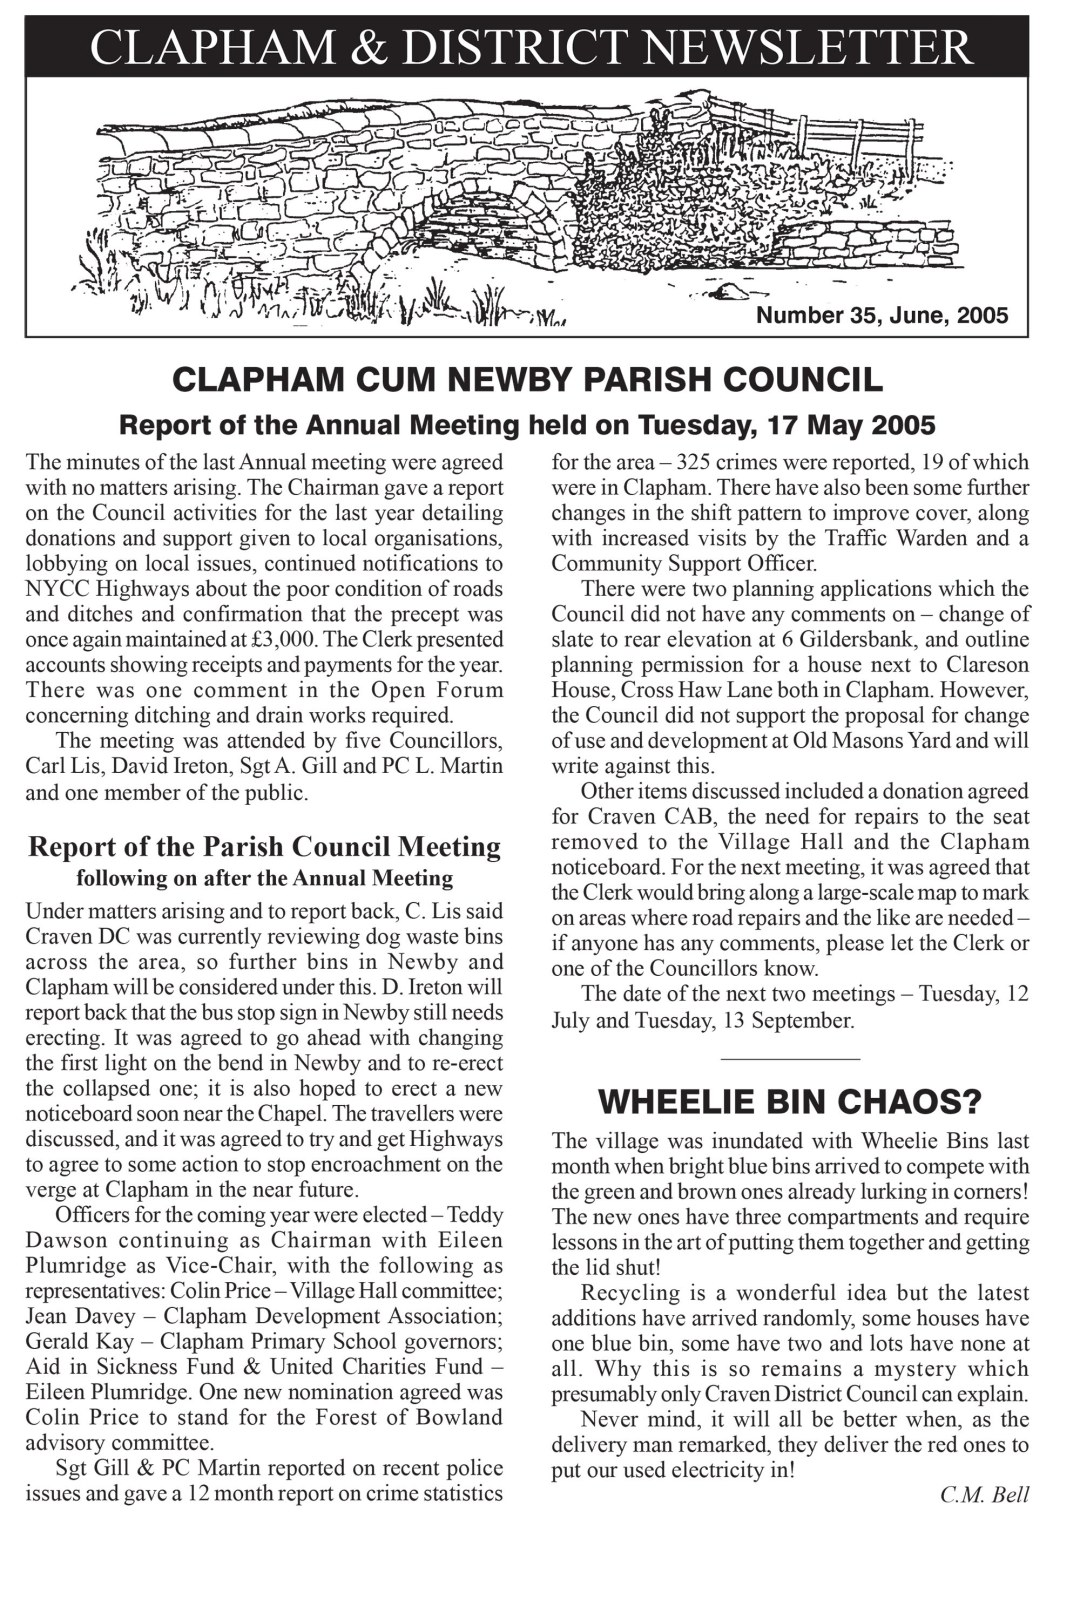 Newsletter_No35_June_2005-1